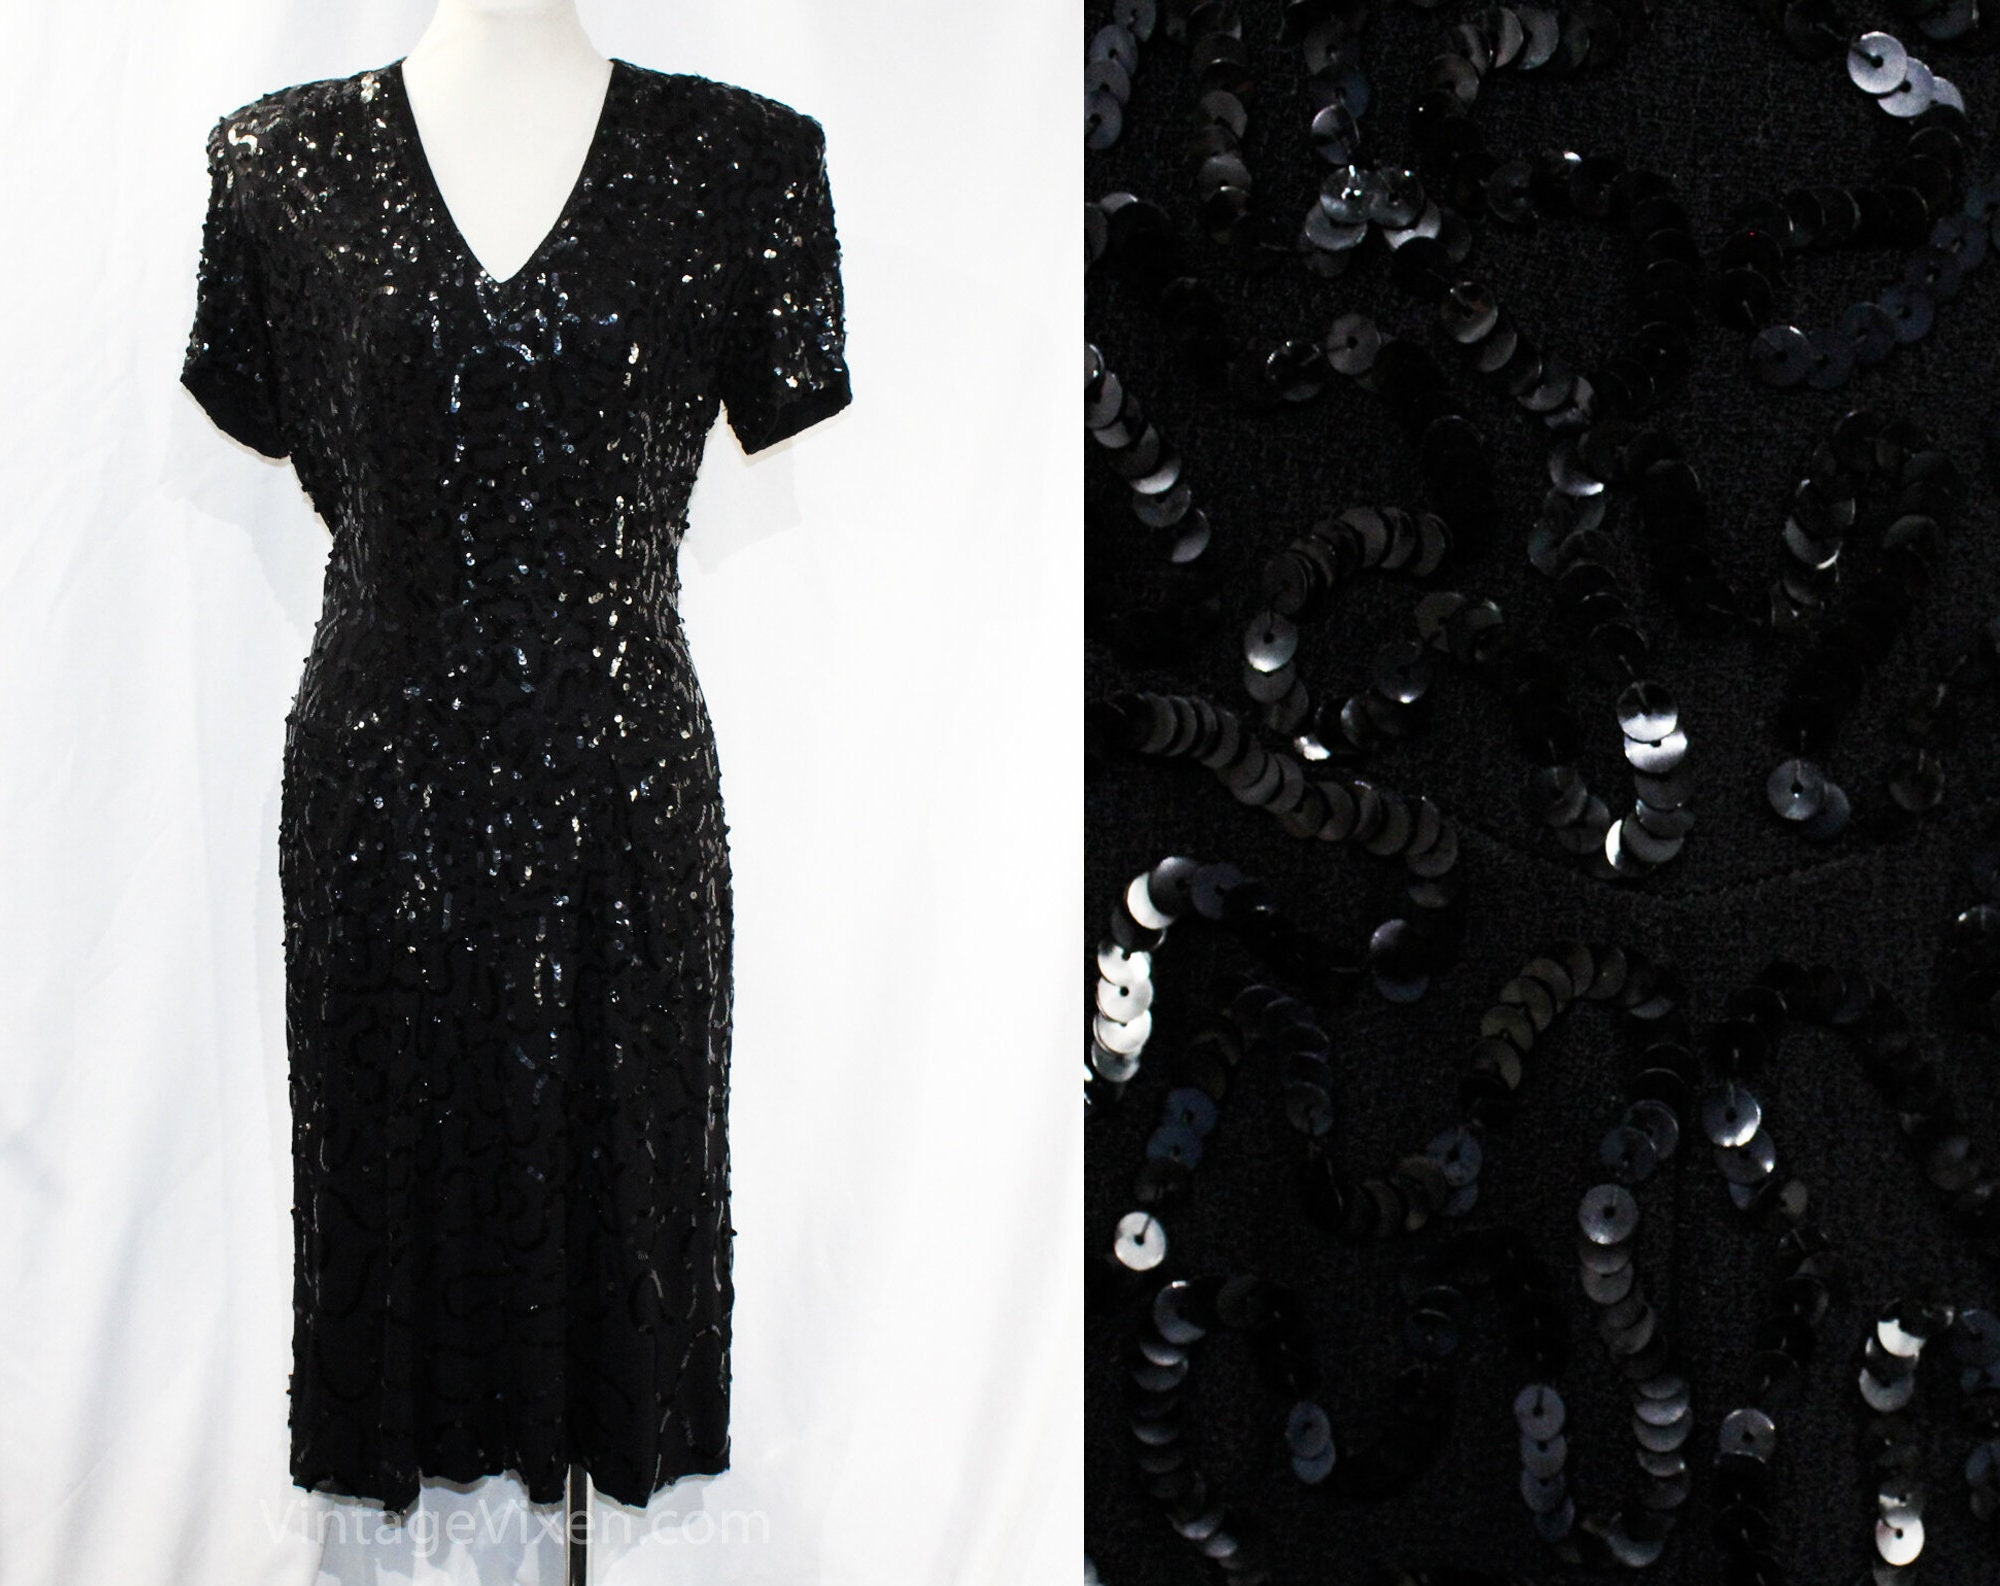 1930s Handbags and Purses Fashion Large 1930S Dress - Custom Made Ca. 1938 Black Crepe  Sequins Cocktail Hollywood Style Wwii Wartime Era Hourglass Bust 39.5 Waist 32 $245.00 AT vintagedancer.com